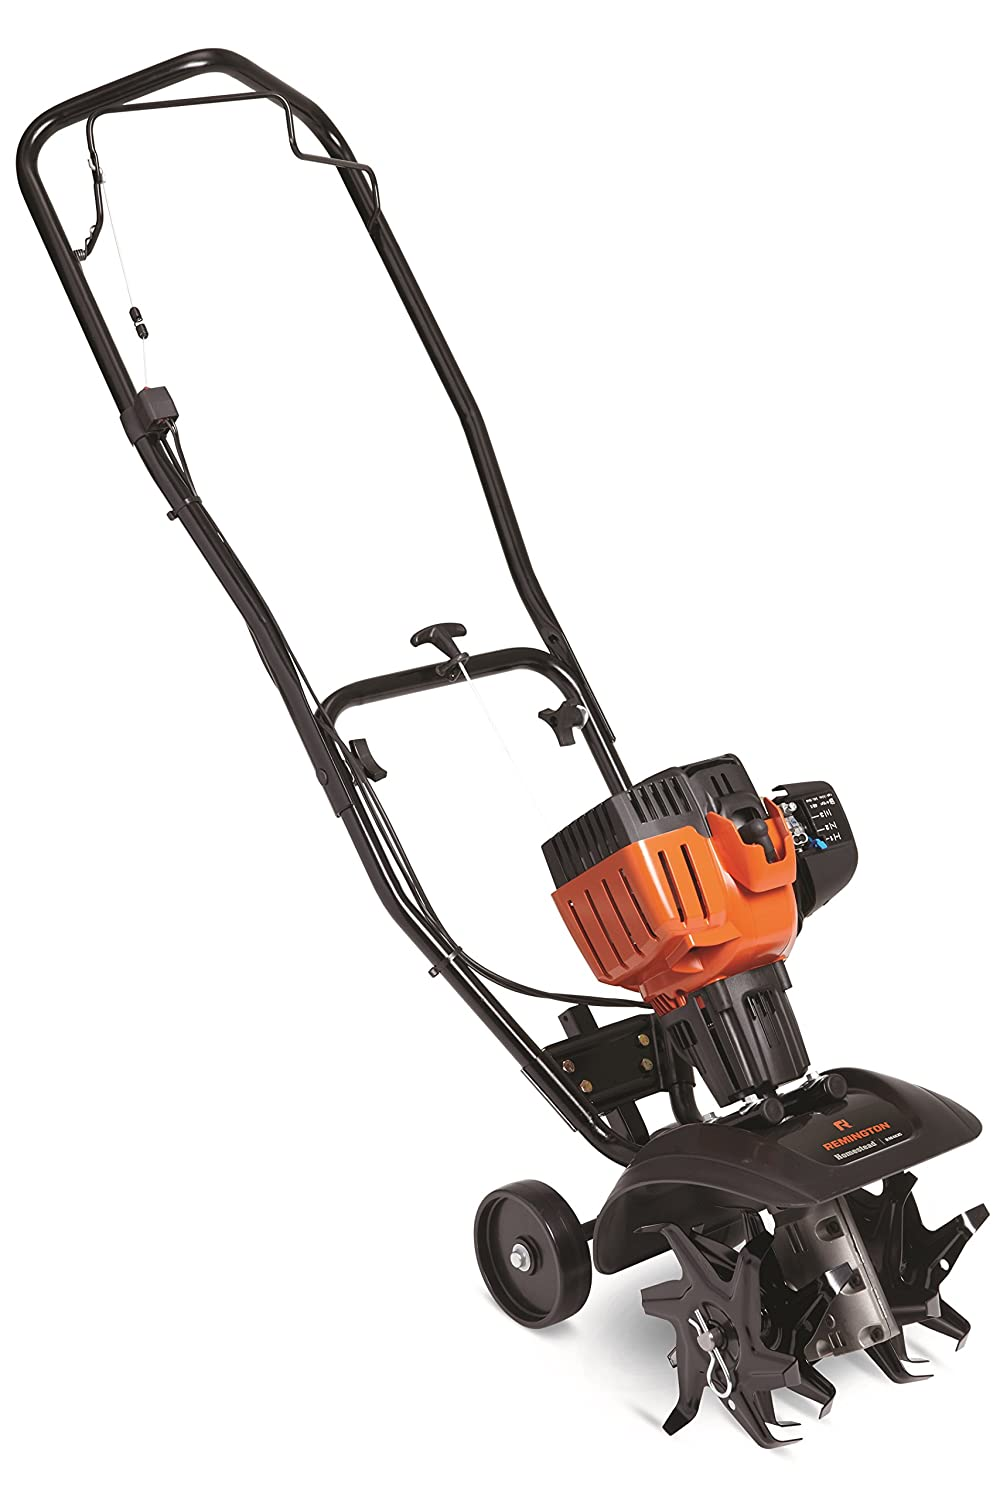 pleasurable home depot garden tillers. Amazon com  Remington RM4625 Homestead 25cc 2 Cycle Gas Garden Cultivator with Premium Tines Power Tillers Outdoor